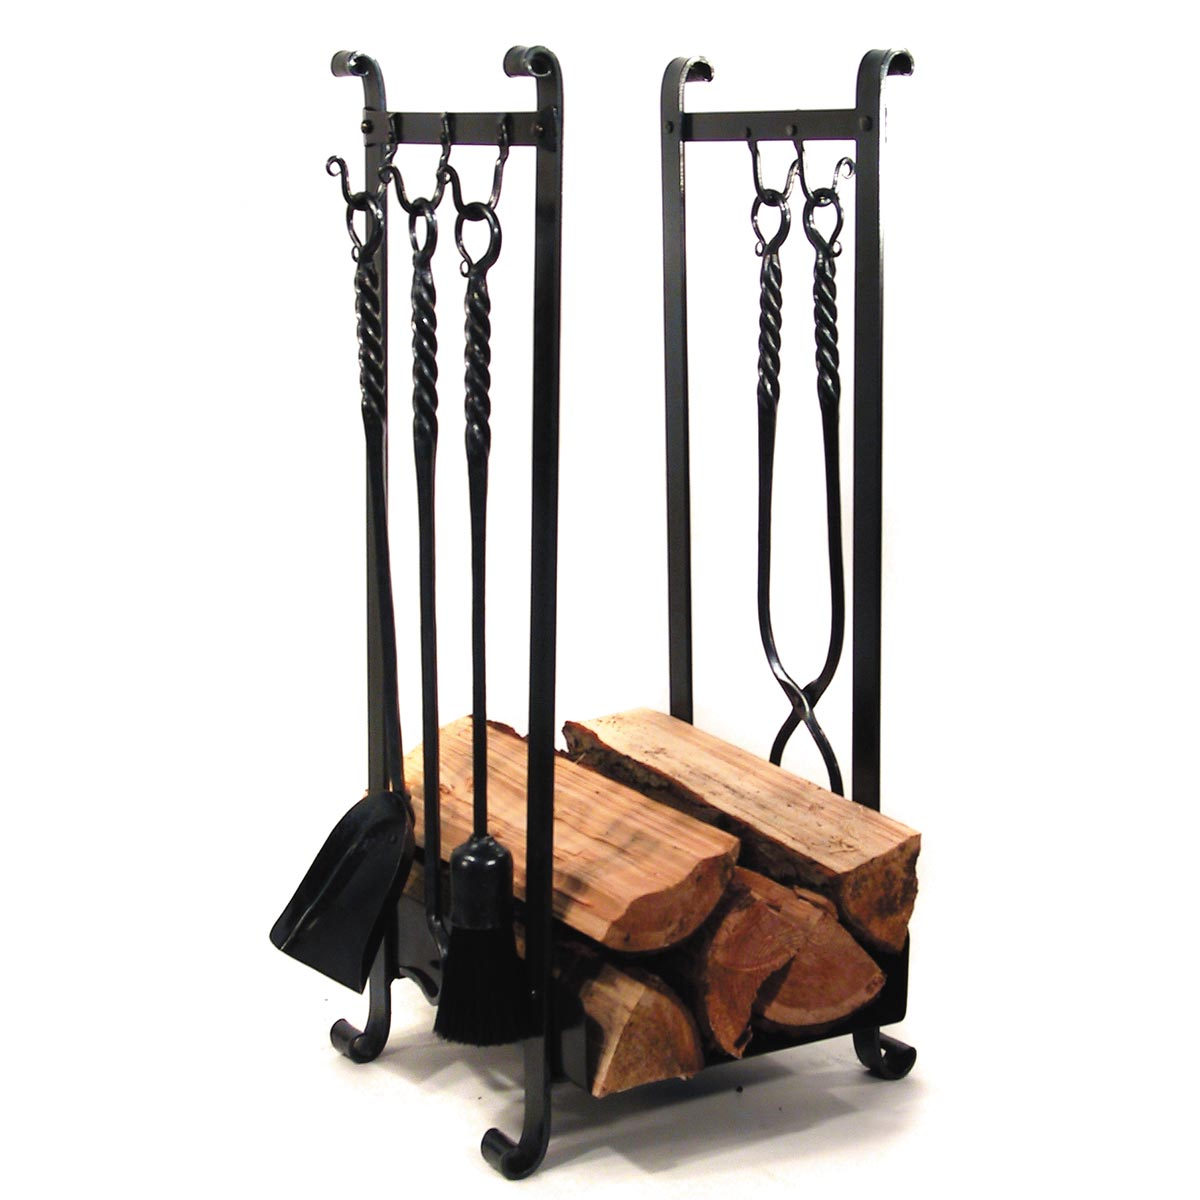 Log Holder With 5 Hooks Wrought Iron Home Accessories